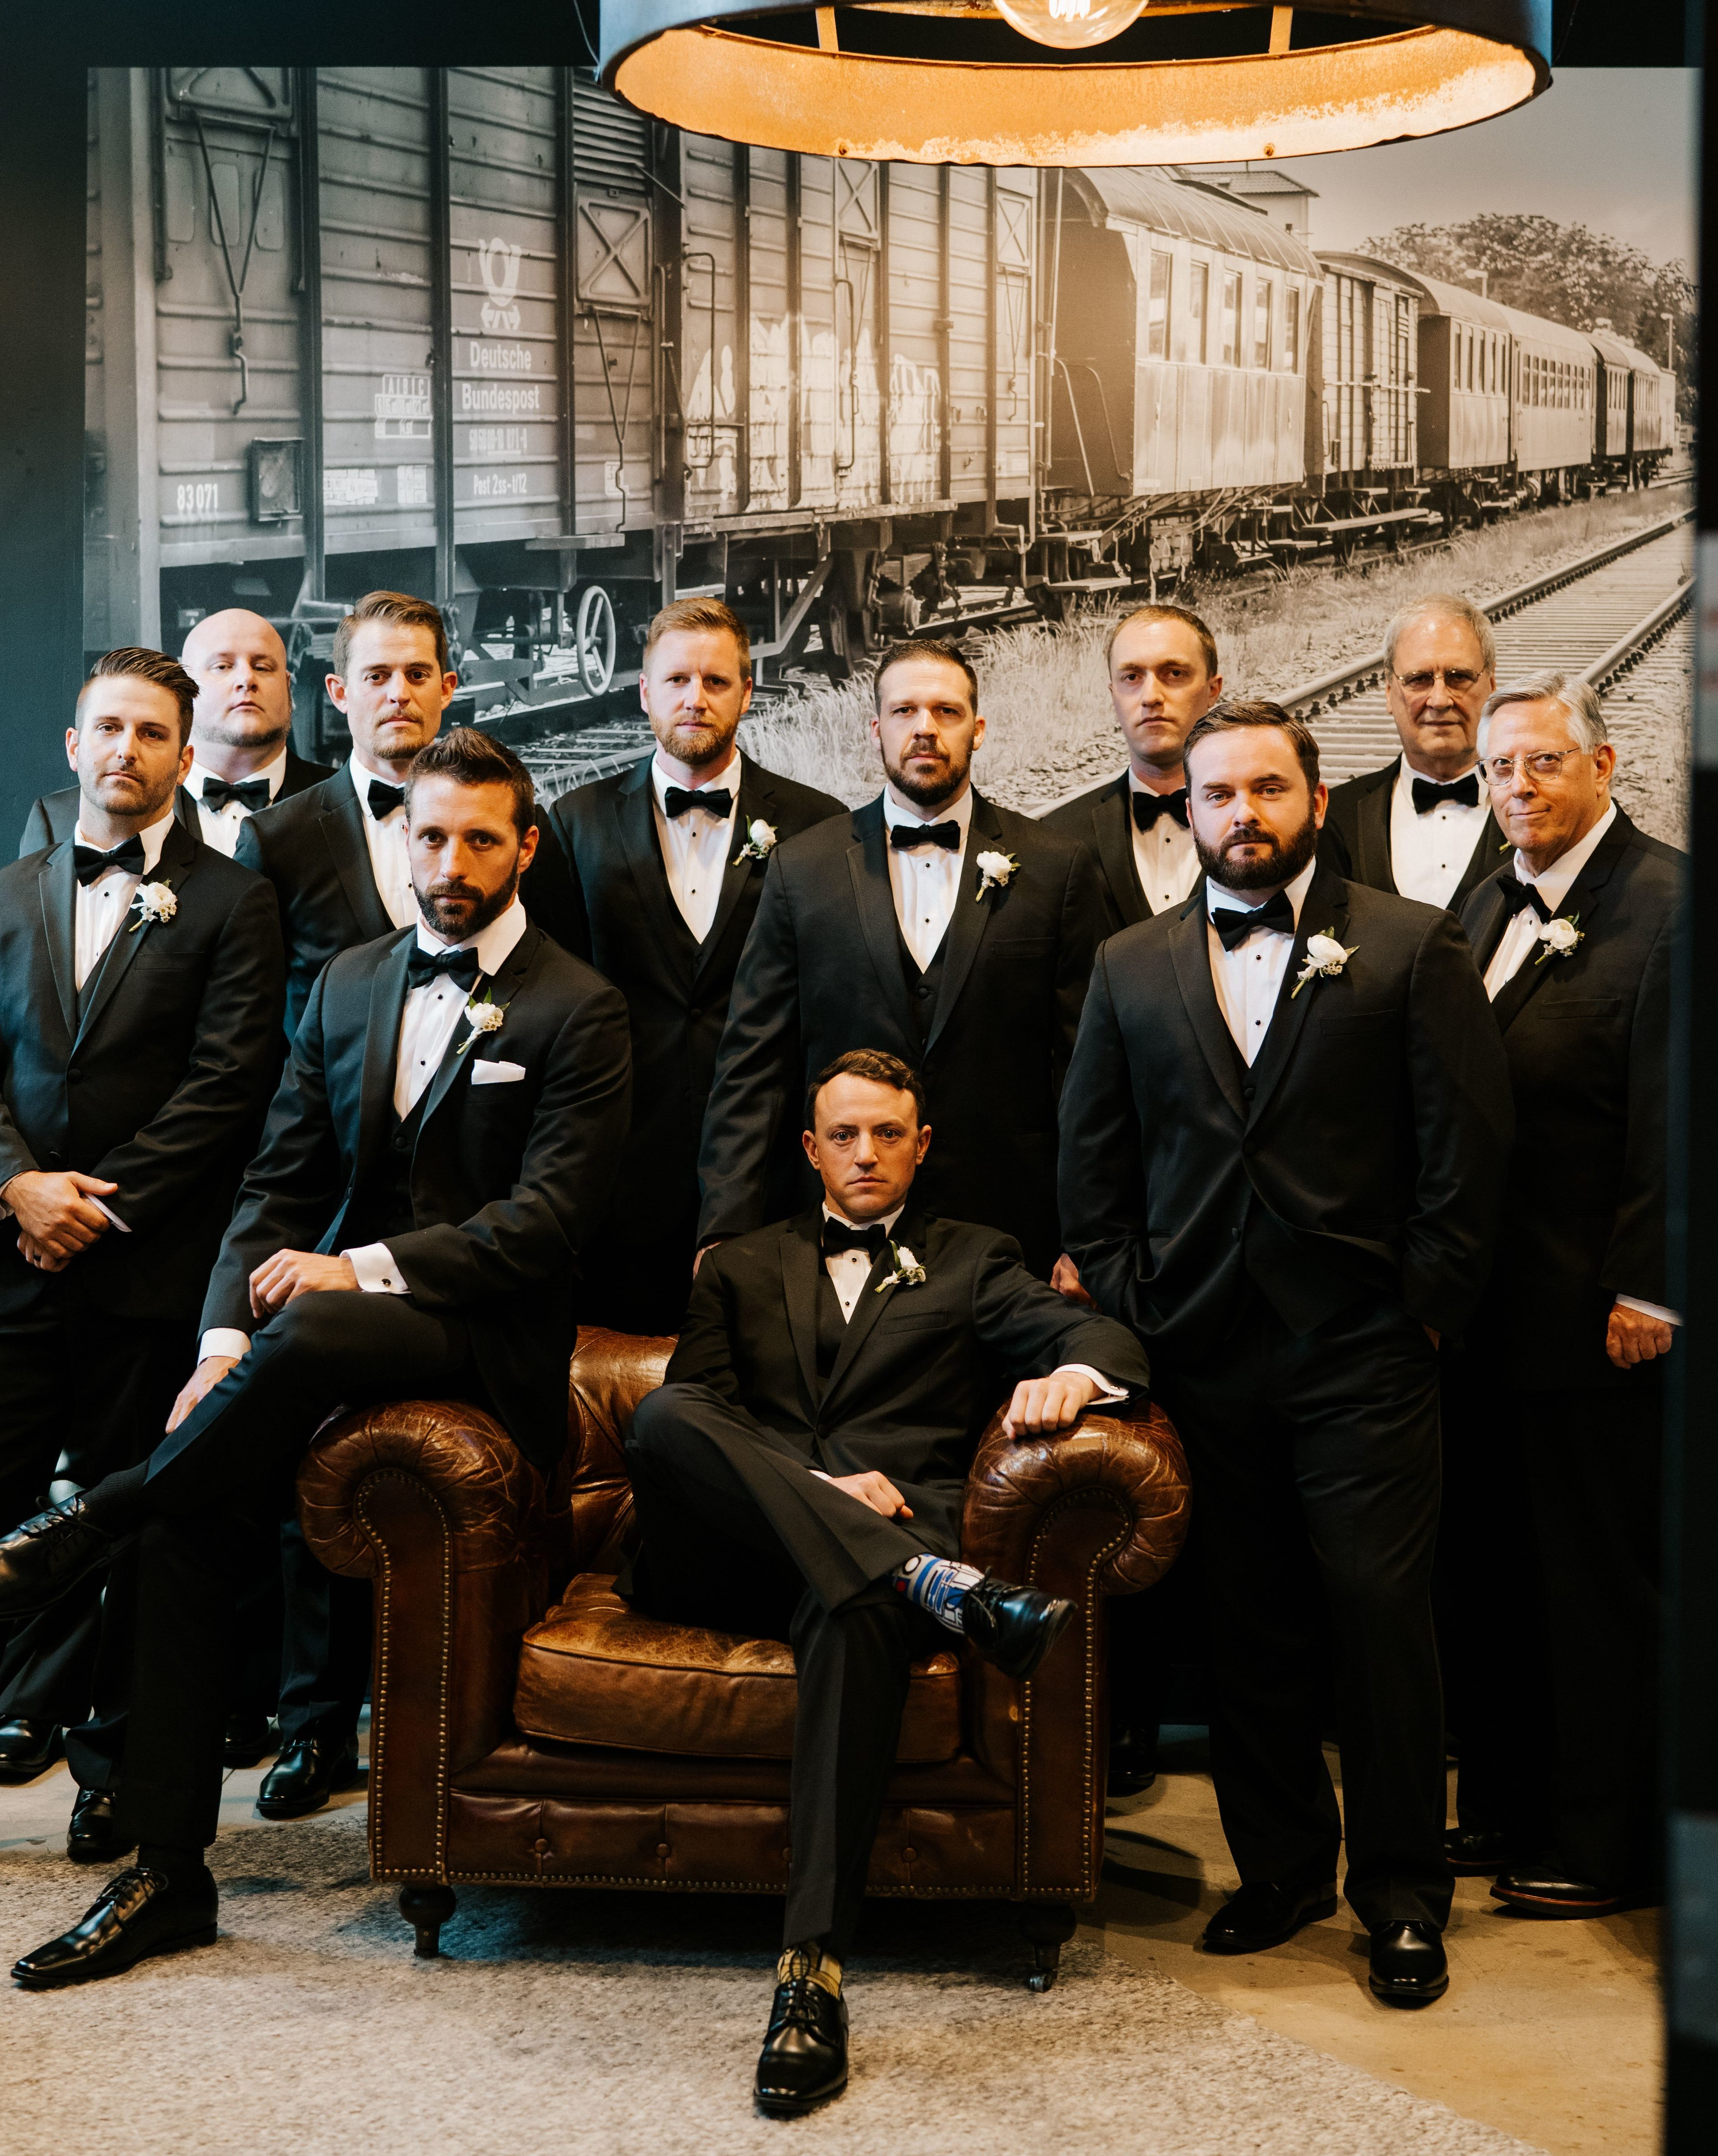 The groom sits in a leather armchair surrounded by his groomsmen, all in black Tuxedos.